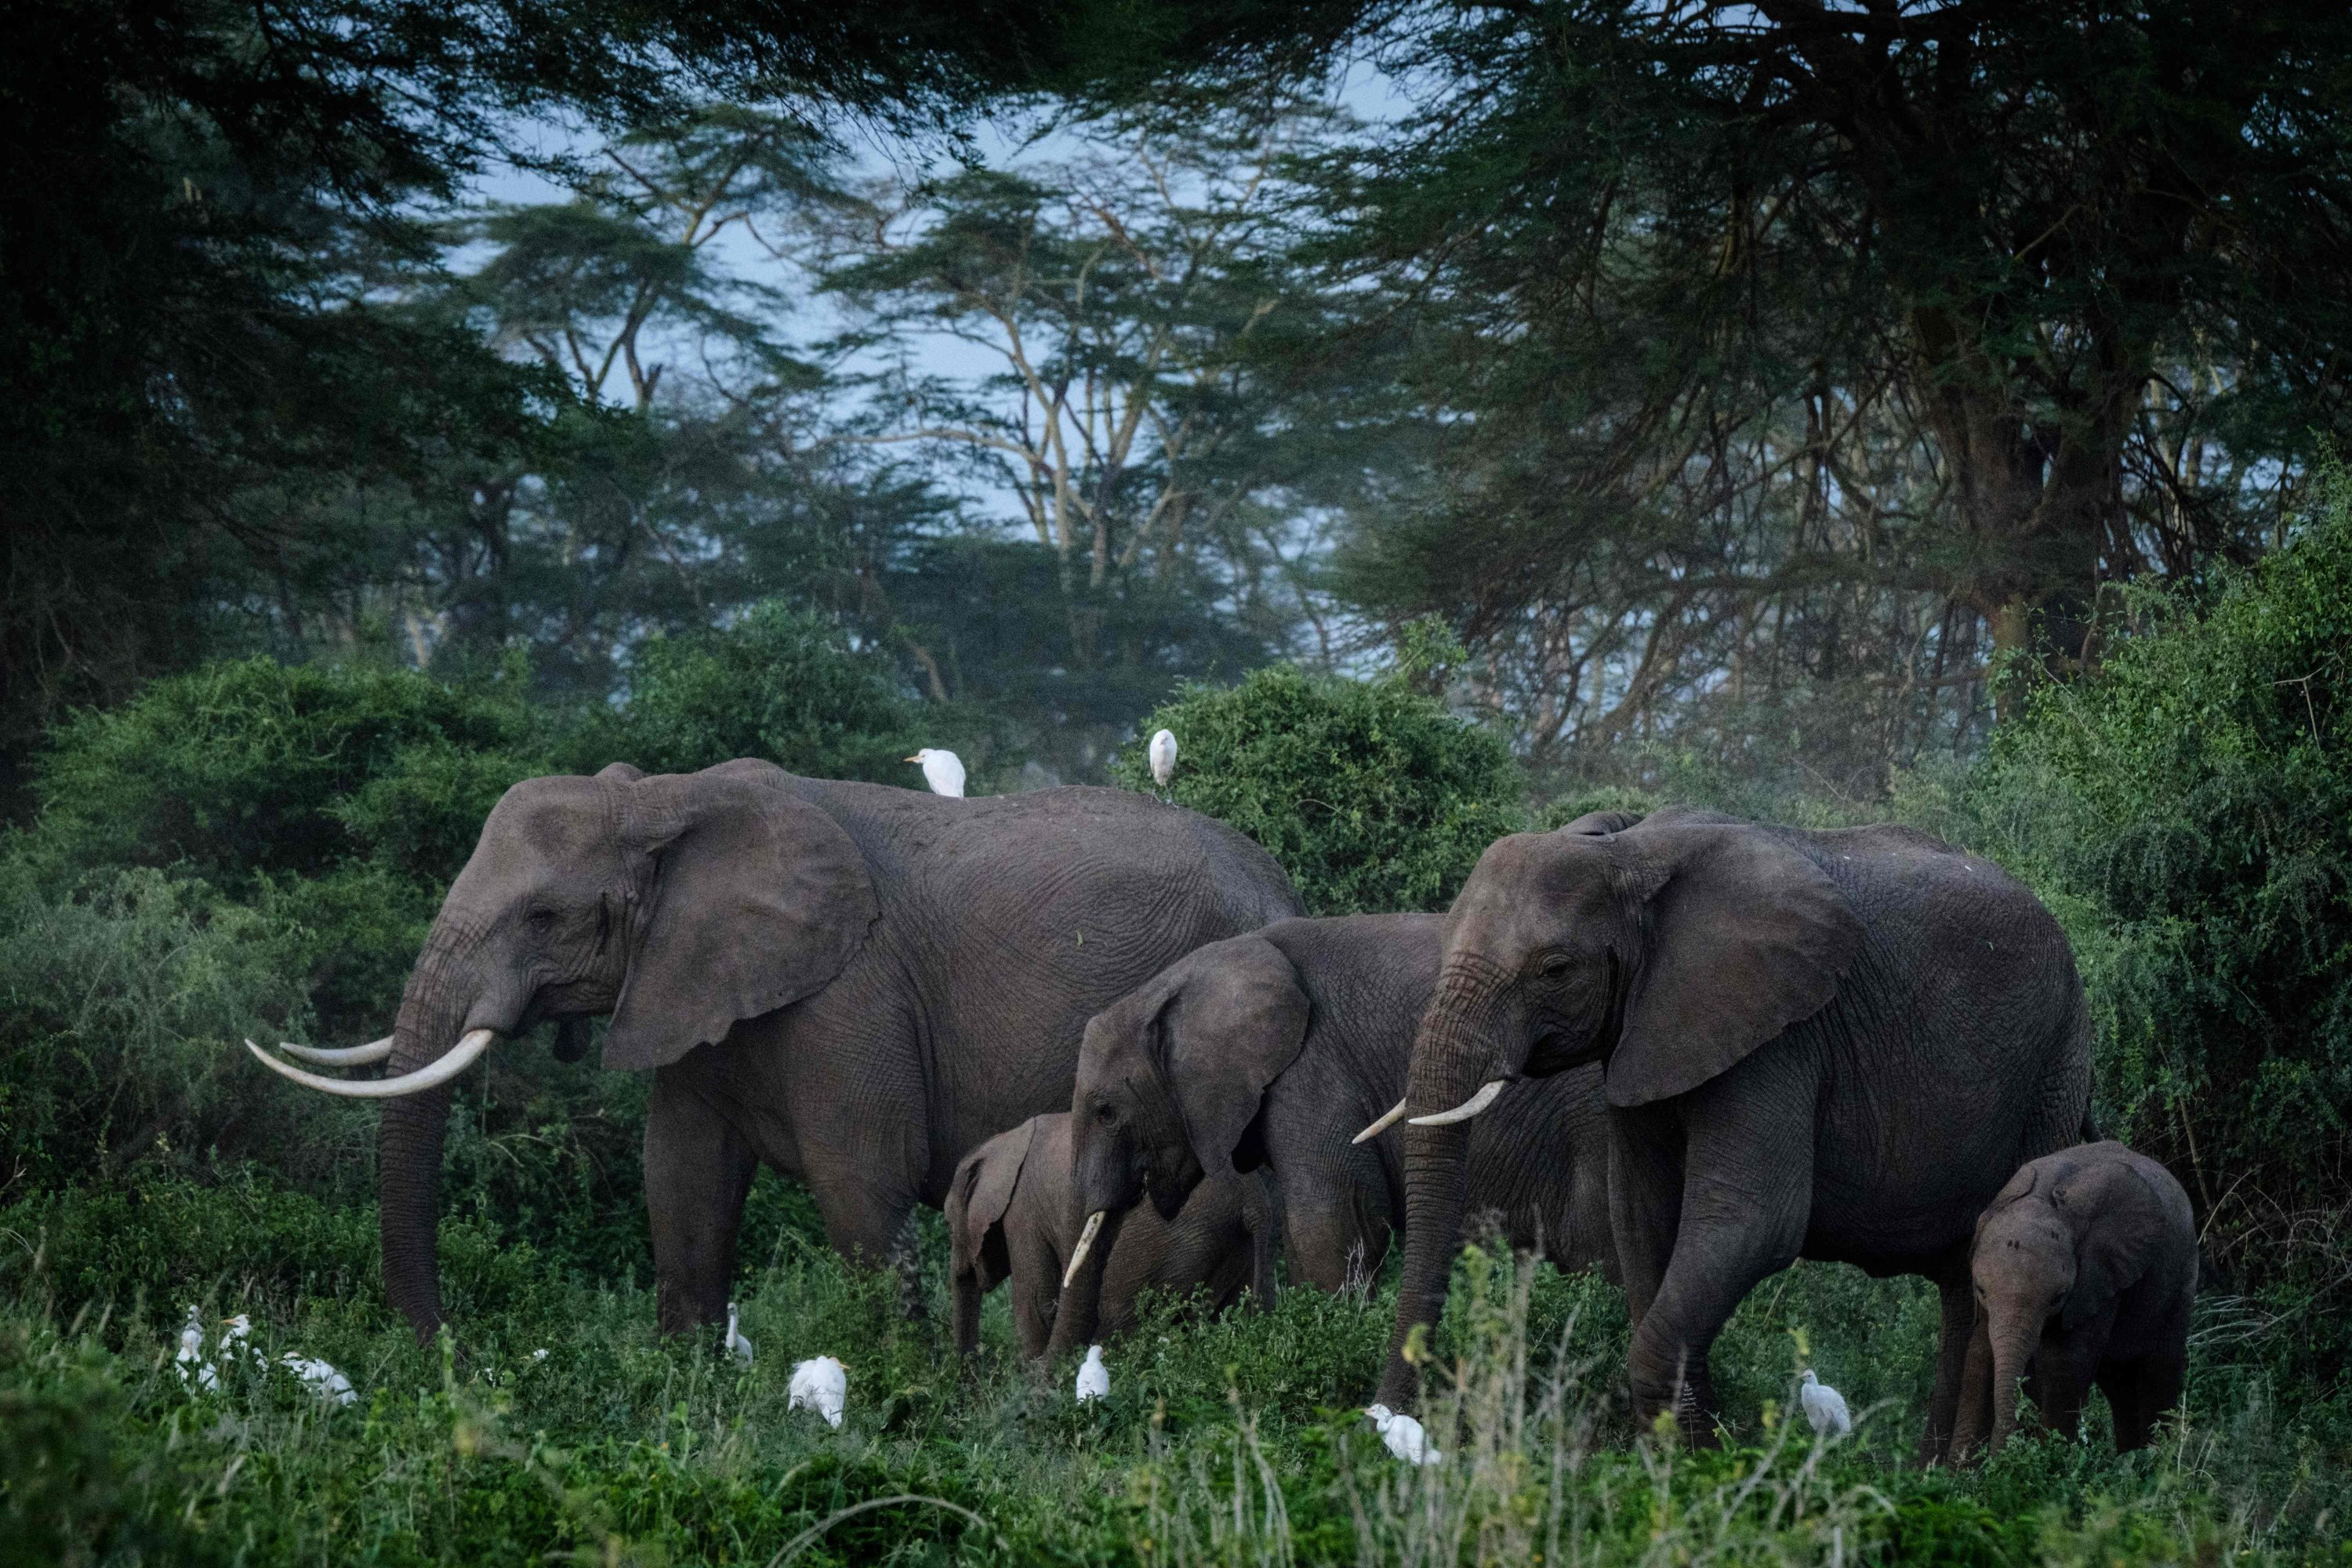 A general view of elephants grazing at Kimana Sanctuary in Kimana, Kenya, on March 2, 2021. (AFP Photo)